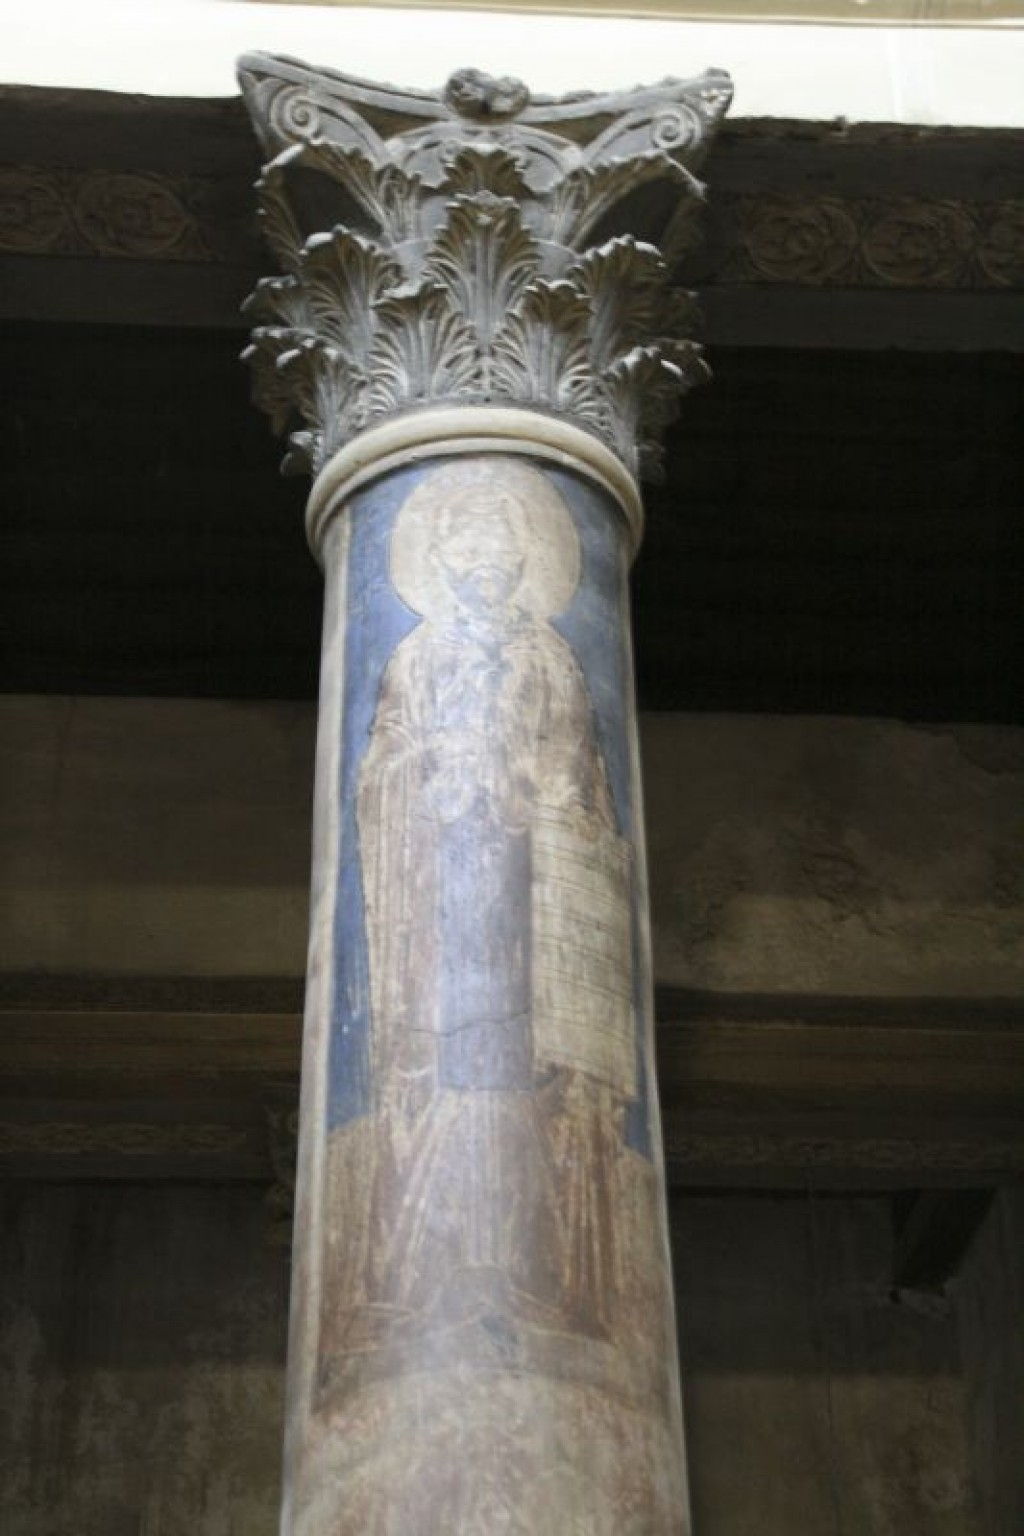 Frescoe on one of the columns in the Church of the Nativity (Basilica of the Nativity).